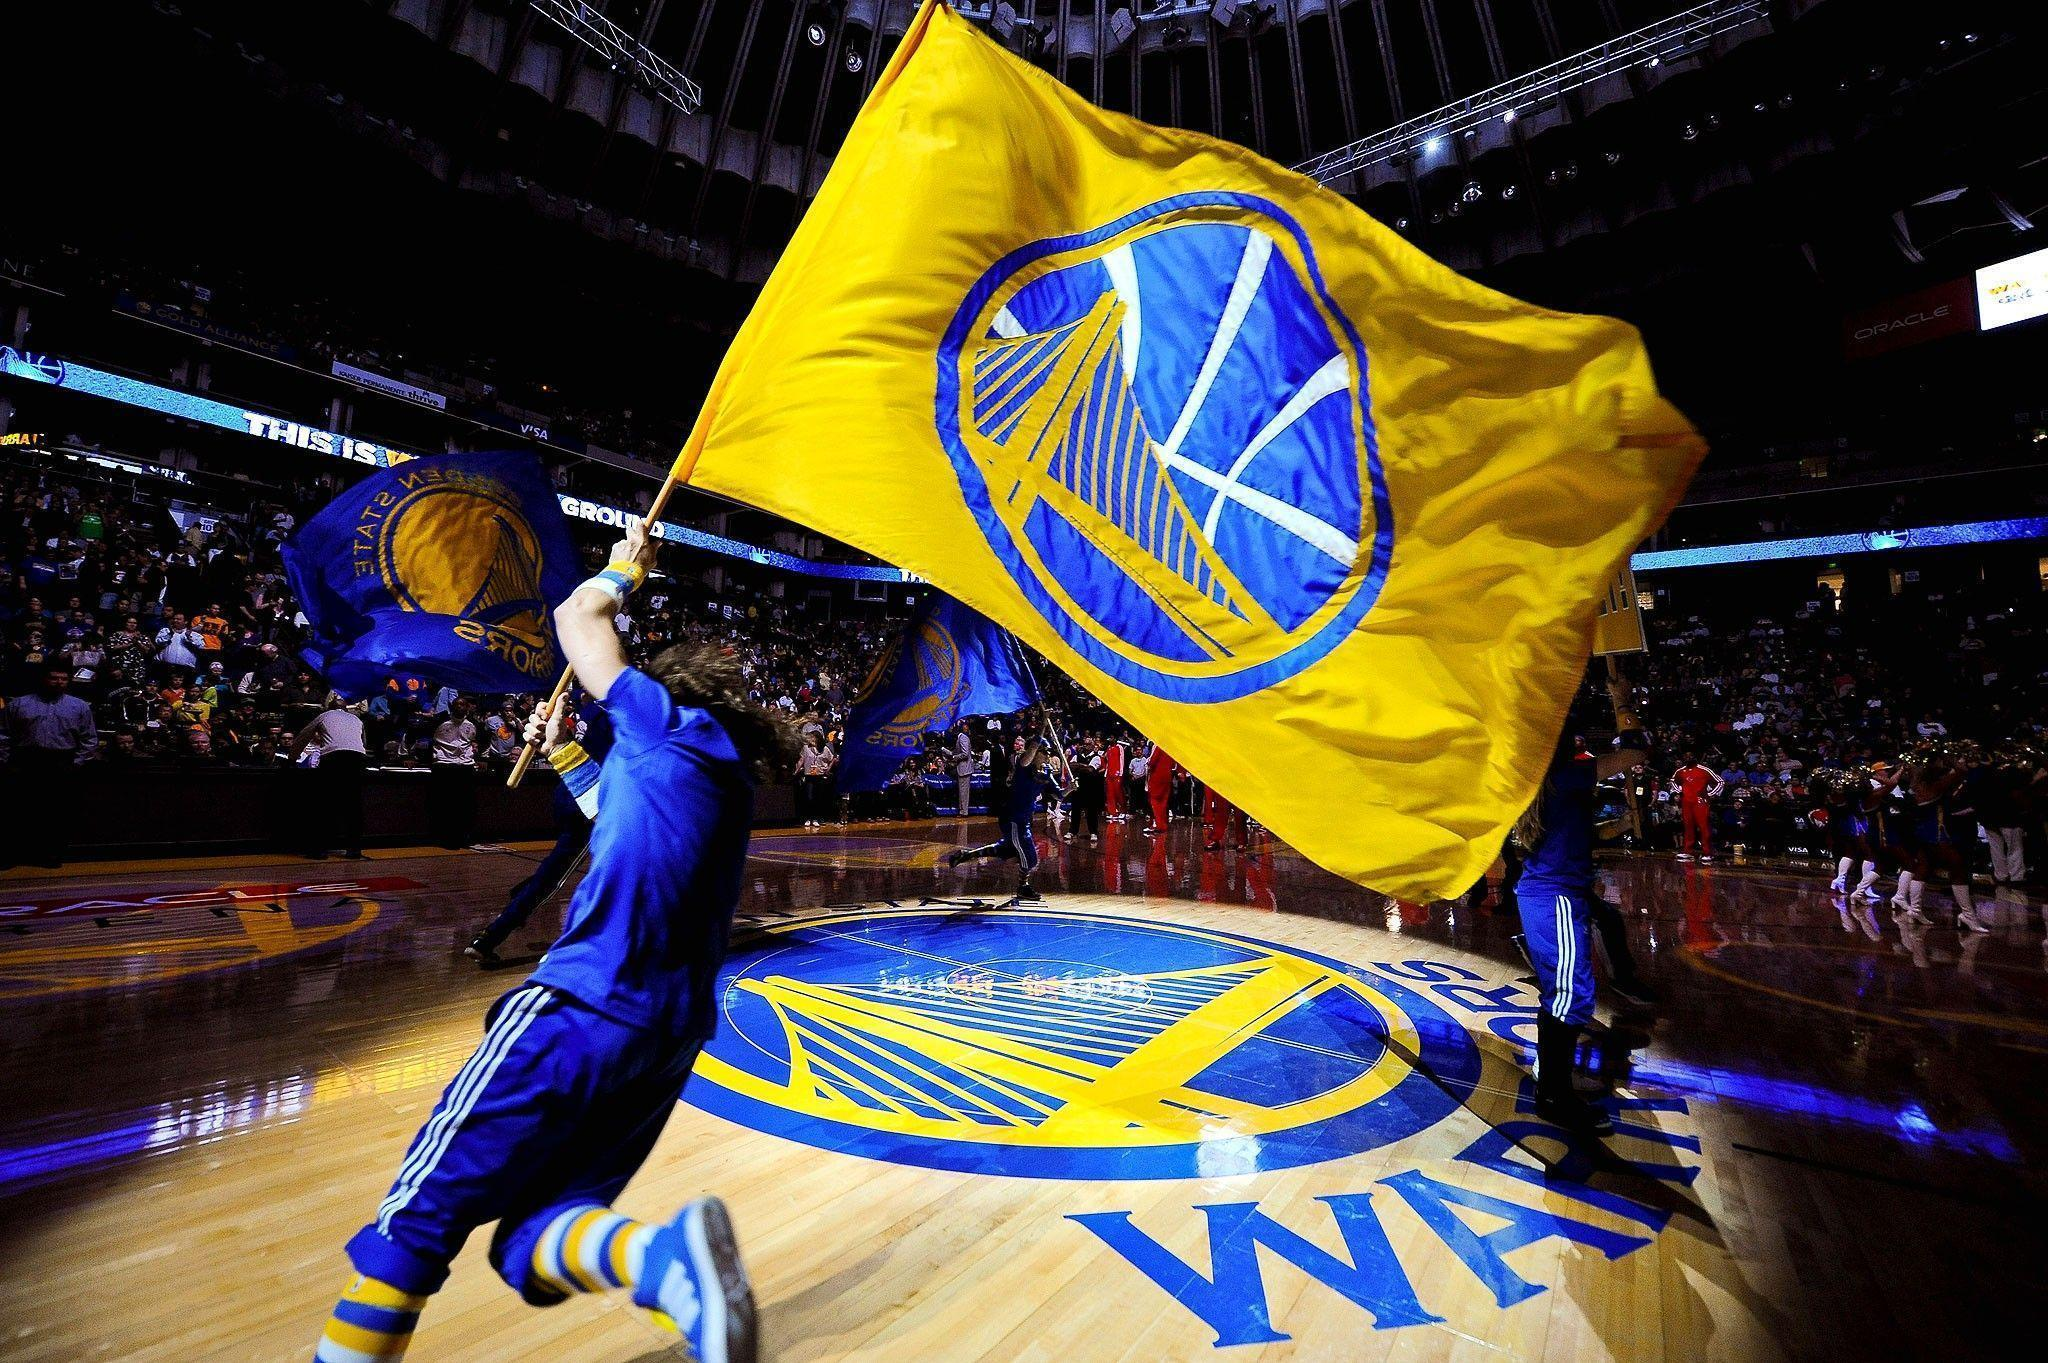 NBA, Basketball, Sports, Golden State Warriors, Warrior Wallpapers